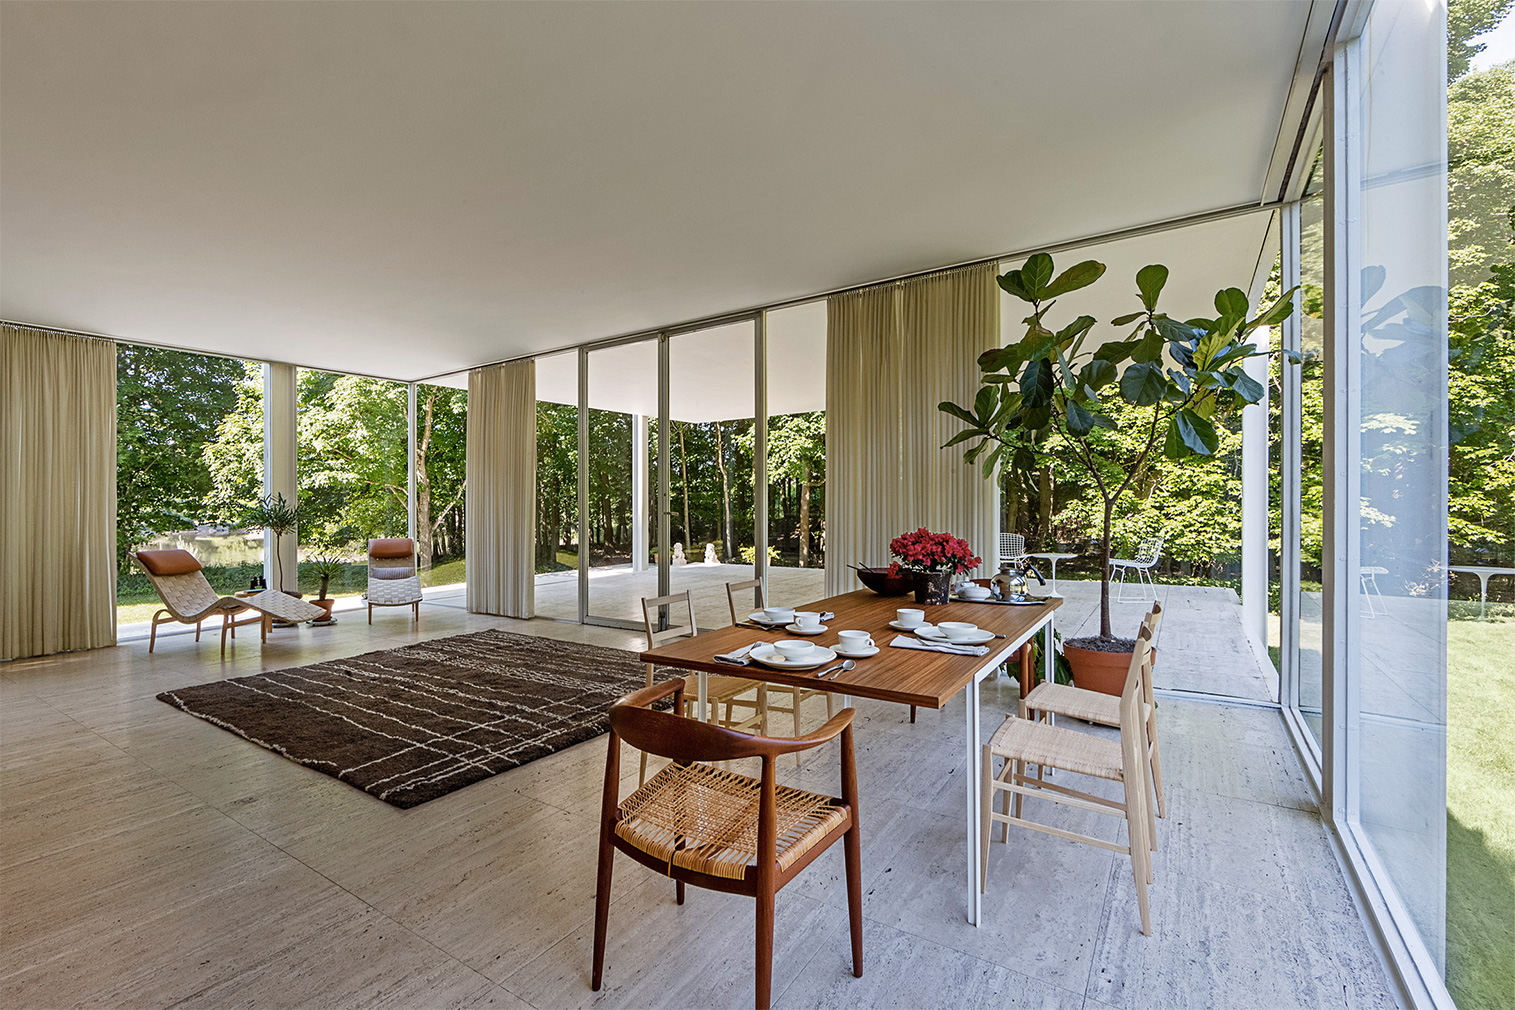 Mies's iconic Farnsworth House goes back to its original interiors for new show